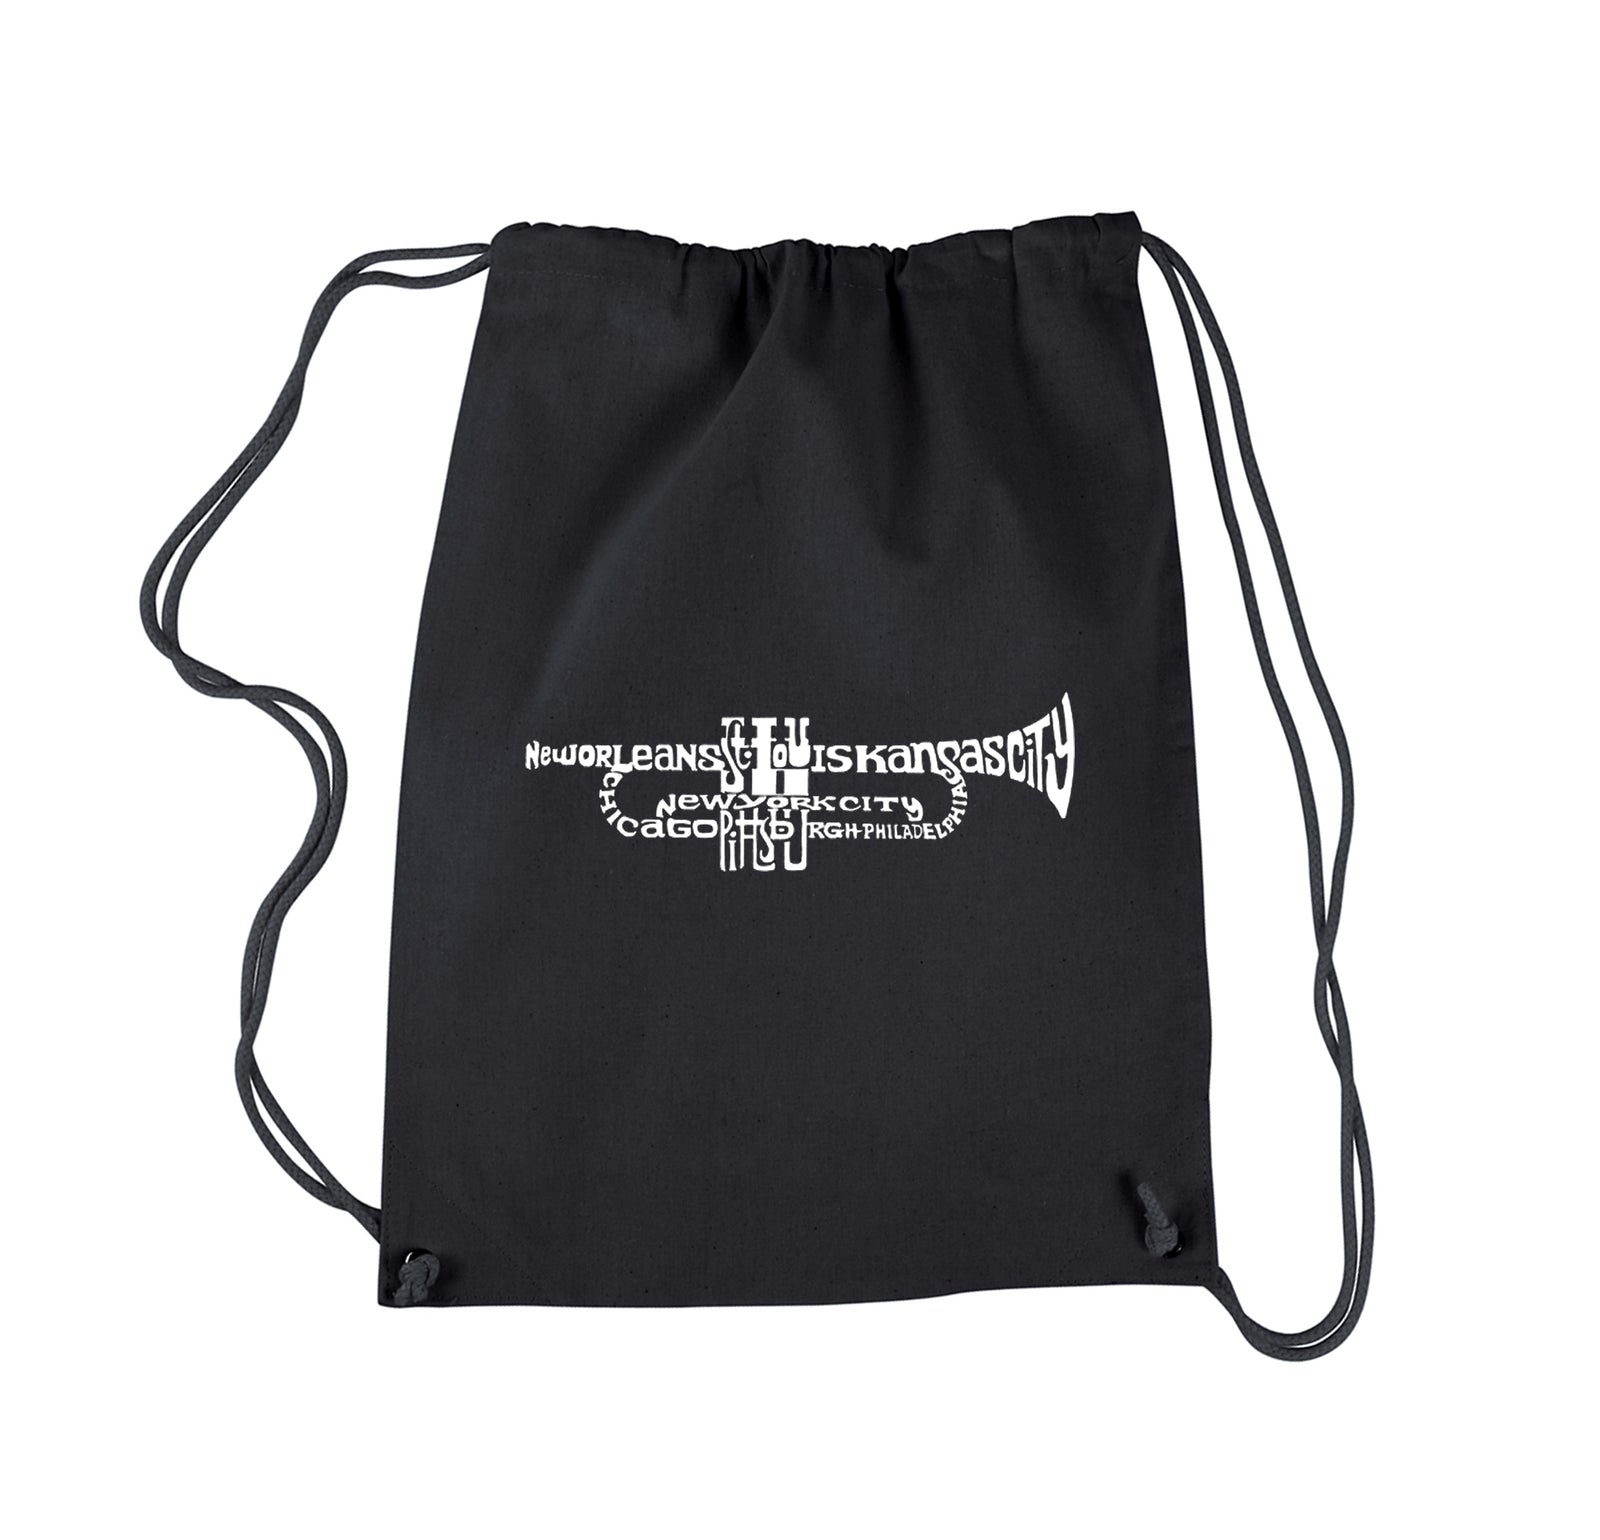 Word Art Drawstring Backpack - Trumpet